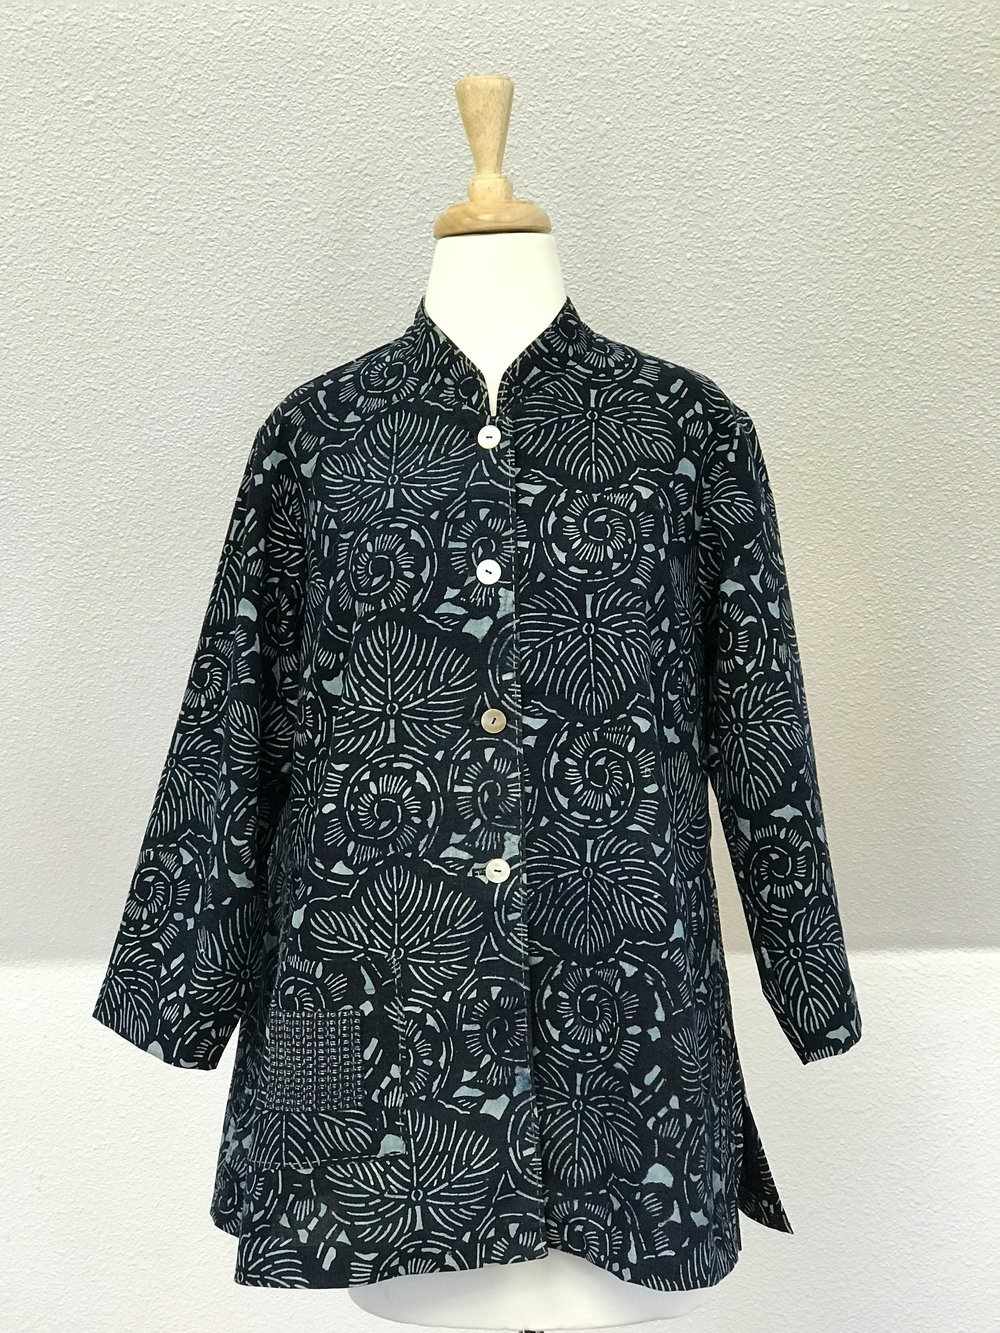 Mao Collar Blouse - Vintage  Aizome Katazome   with Sashiko stitches